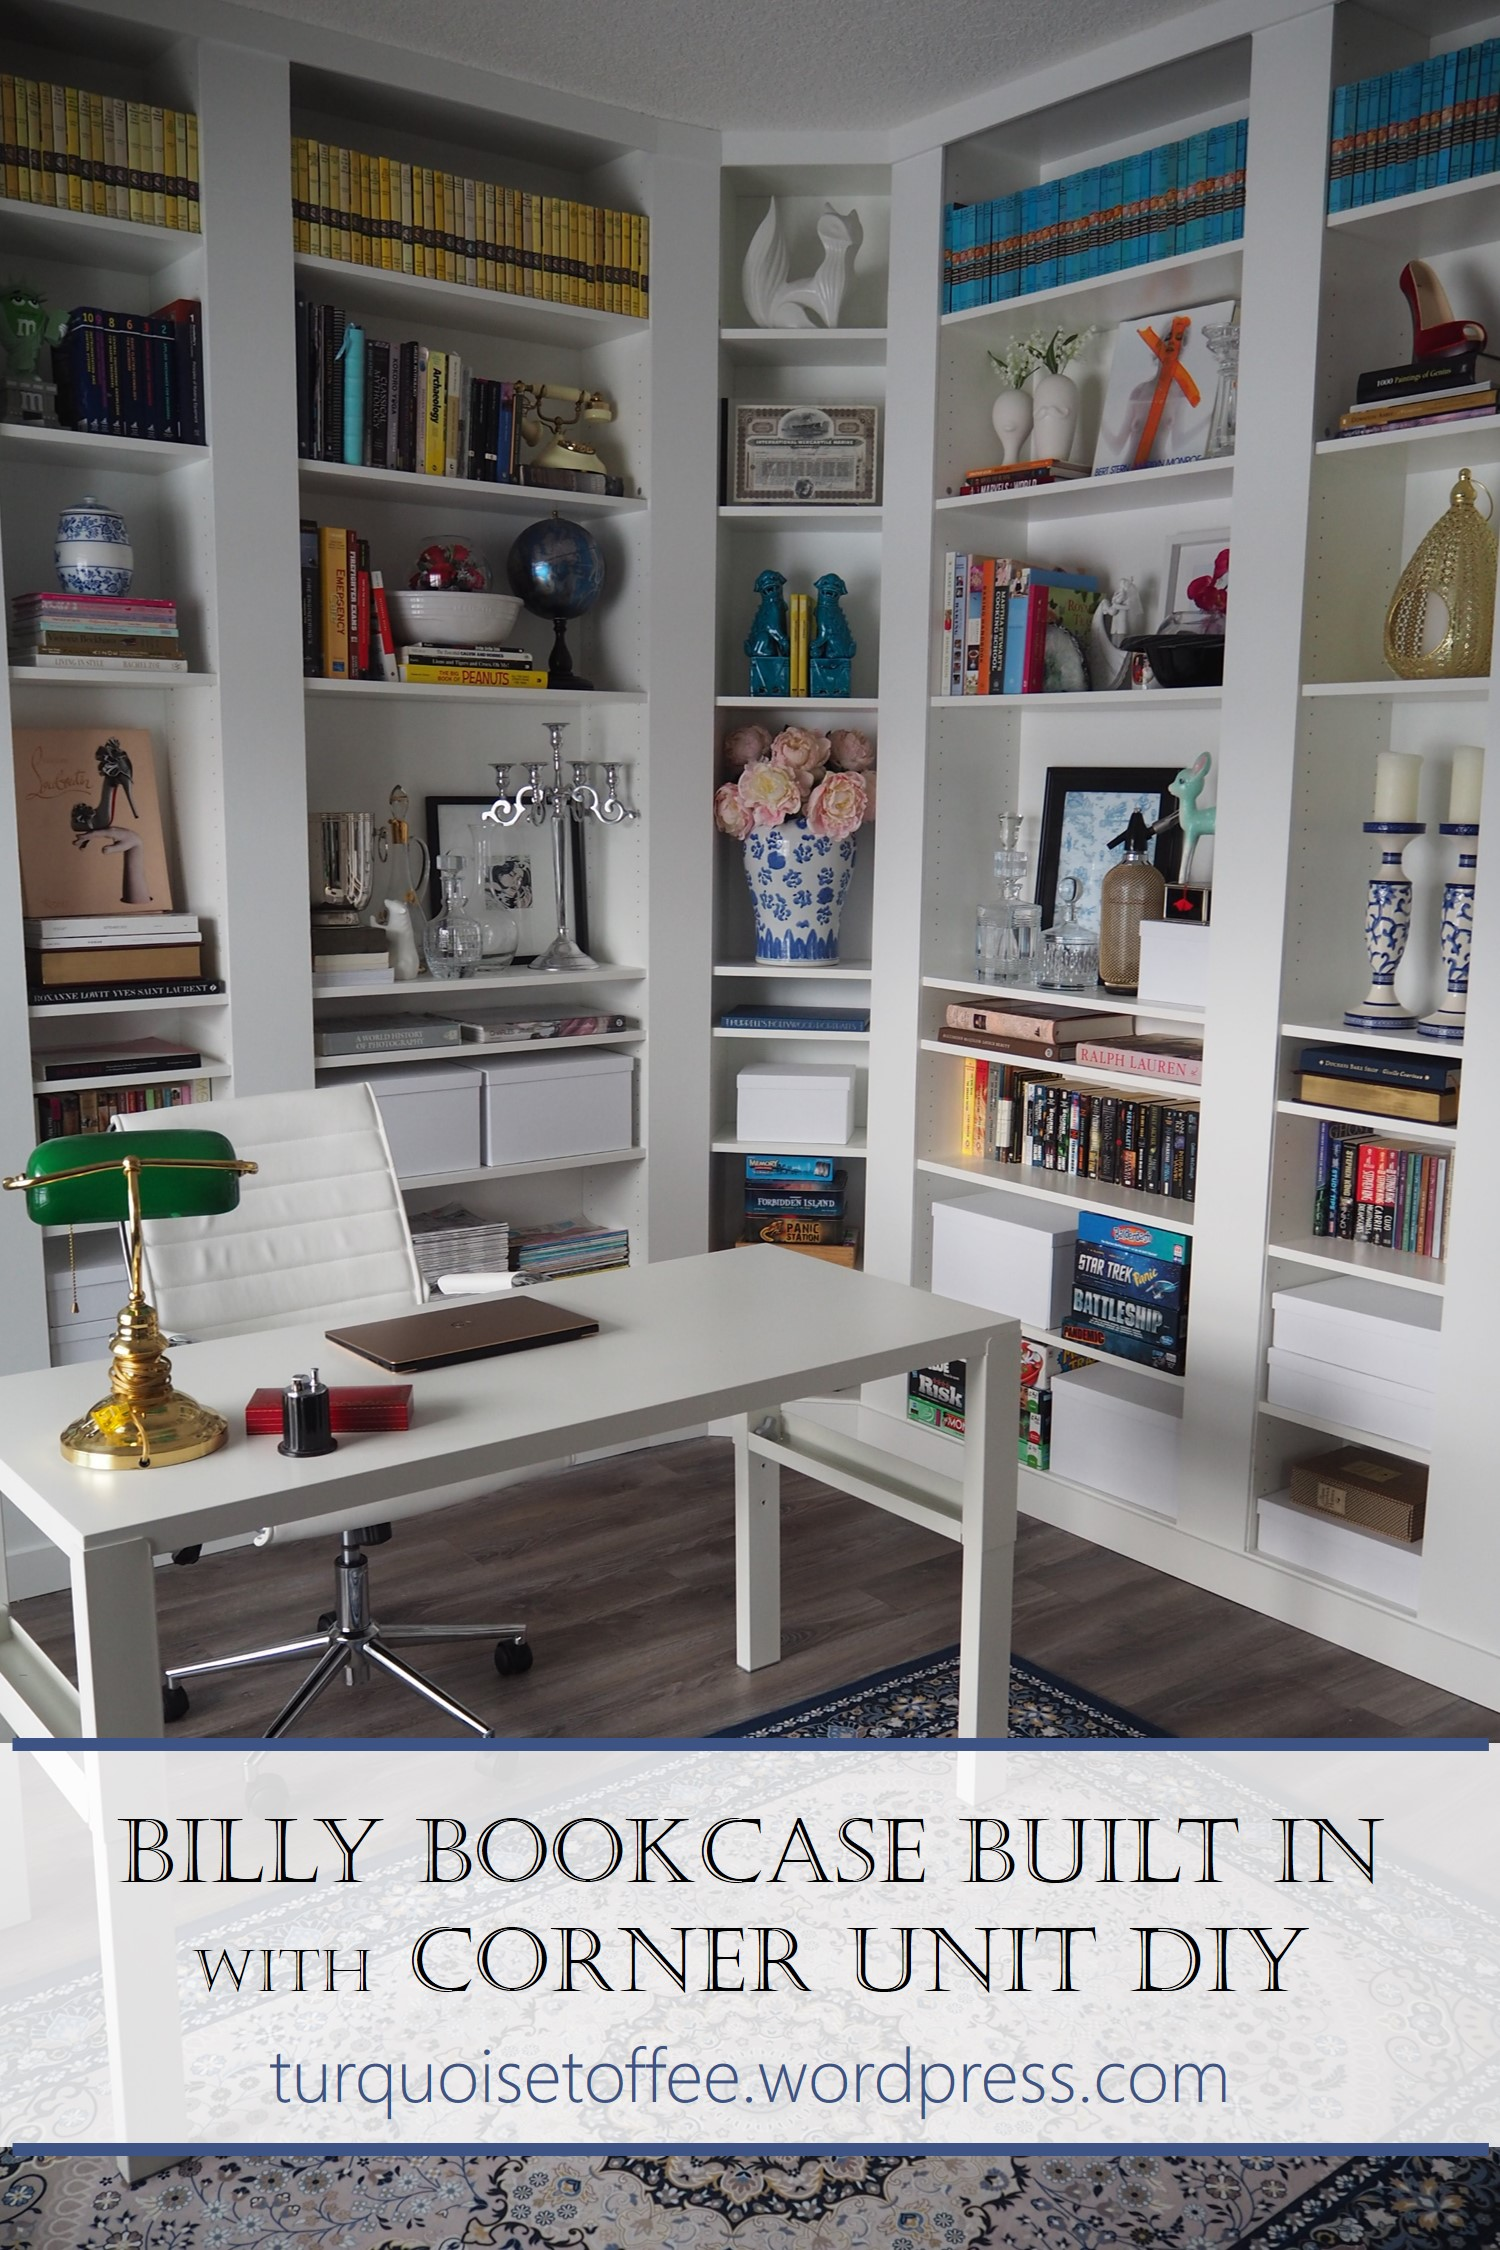 Billy Bookcase Built In With Corner Unit Diy Our Library